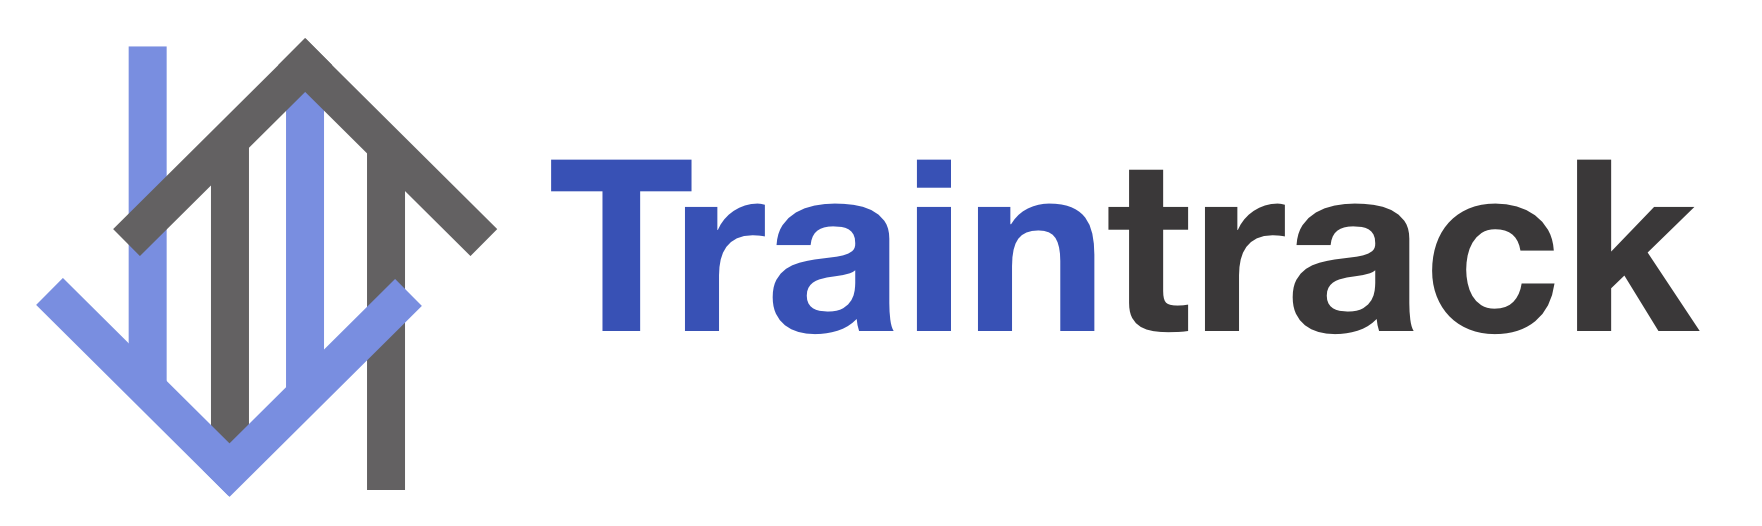 Traintrack logo